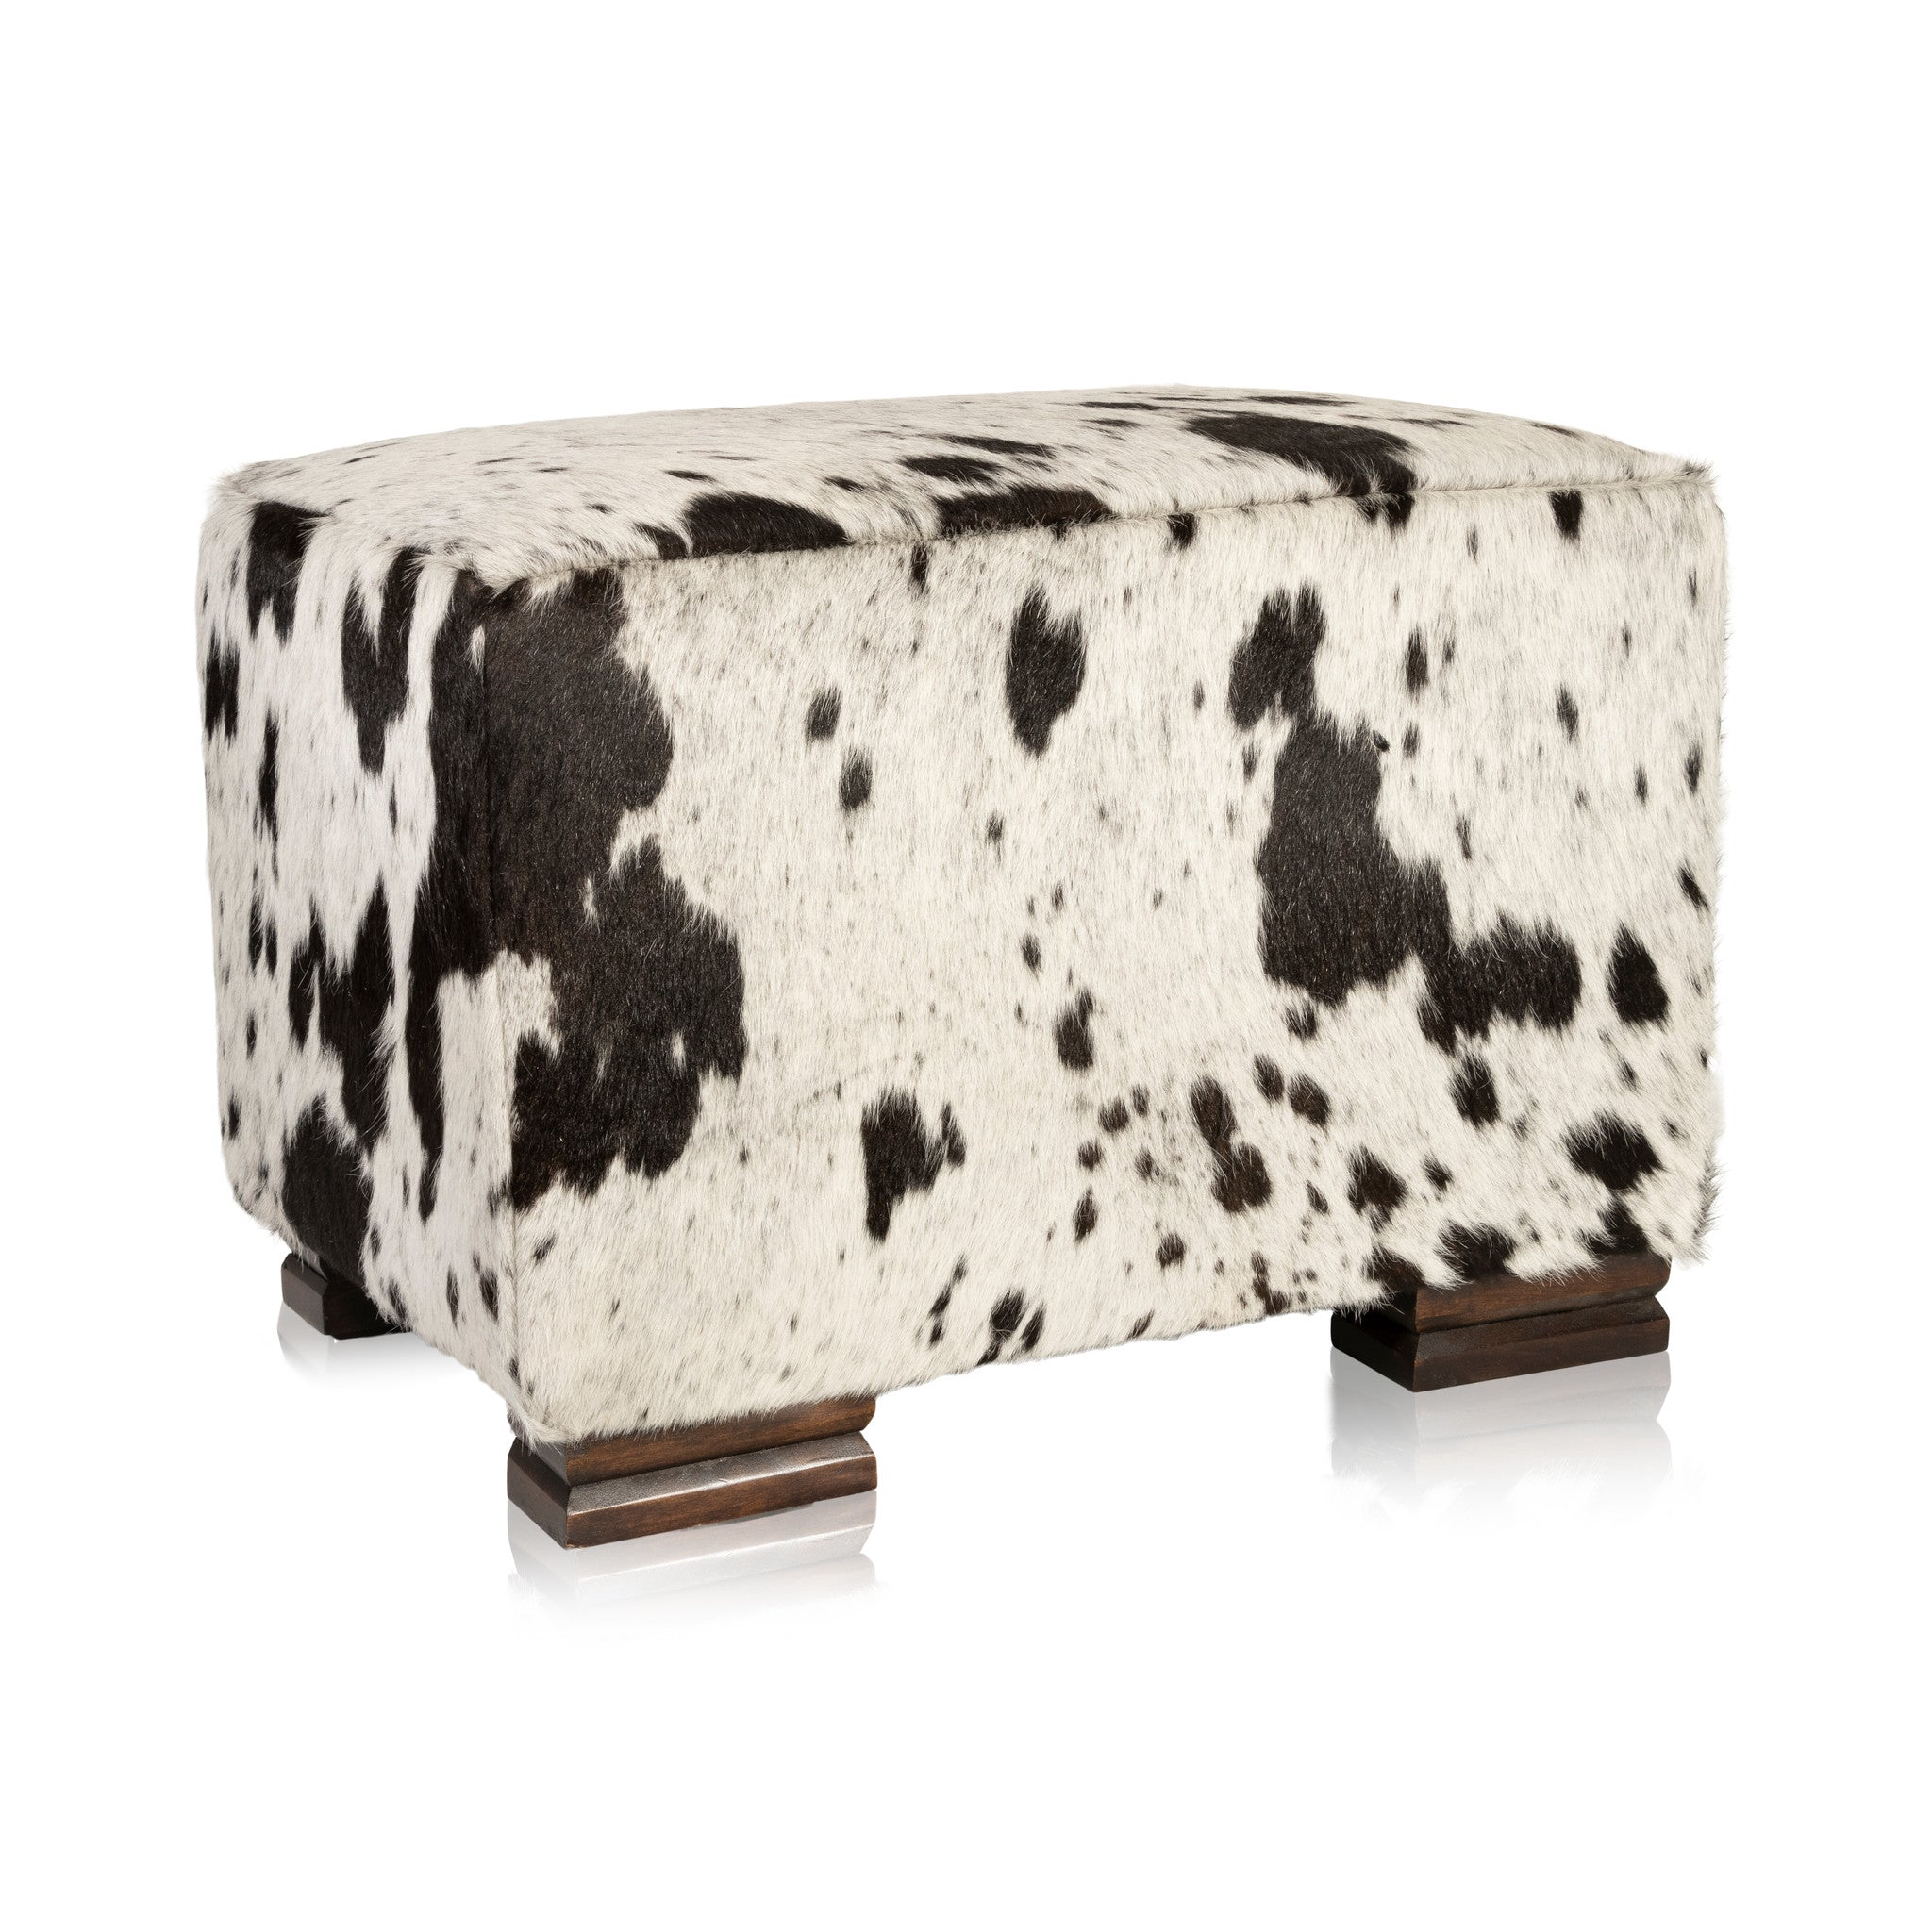 Cisco's Ottoman cowhides, mountain modern, new item, ottomans, seating